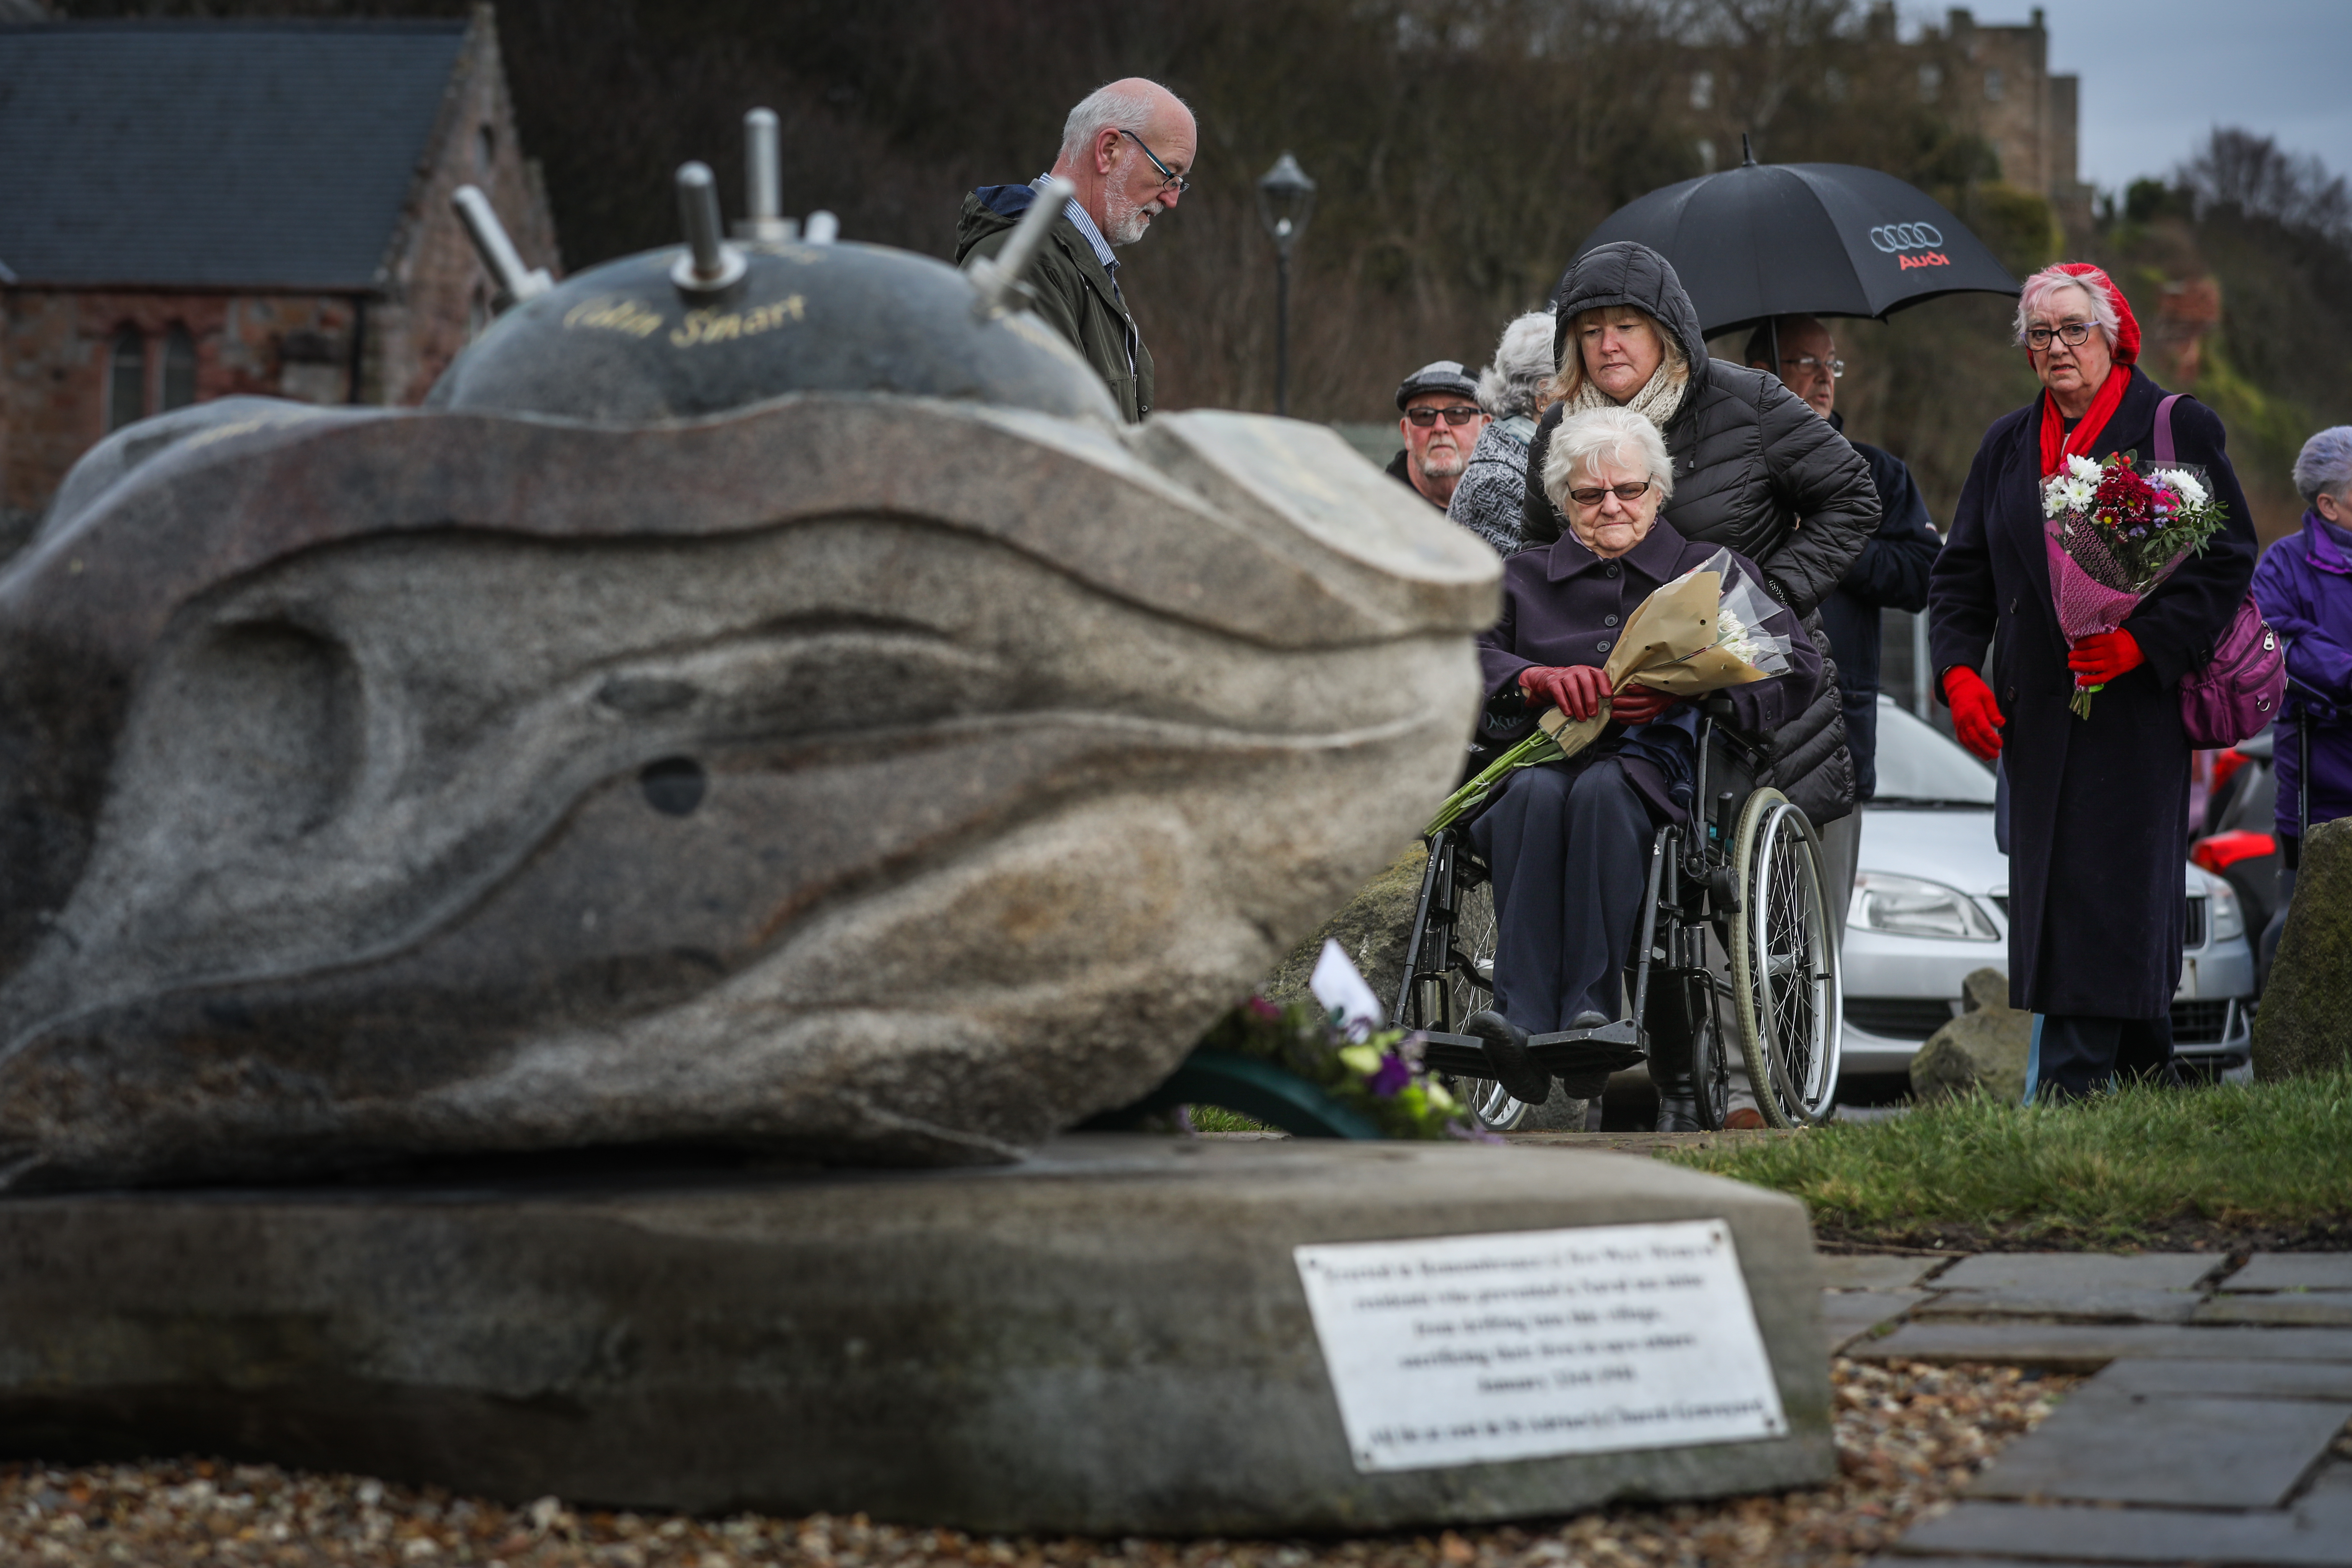 Community members gather for the commemoration